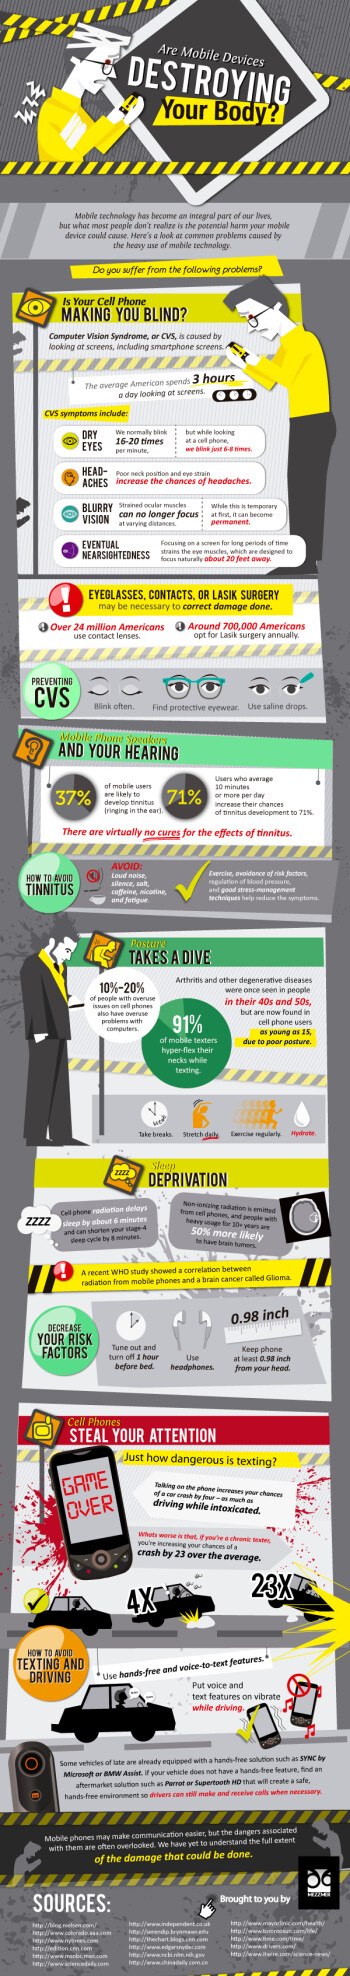 Mobile devices affect your health, what can you do about it (infographic)